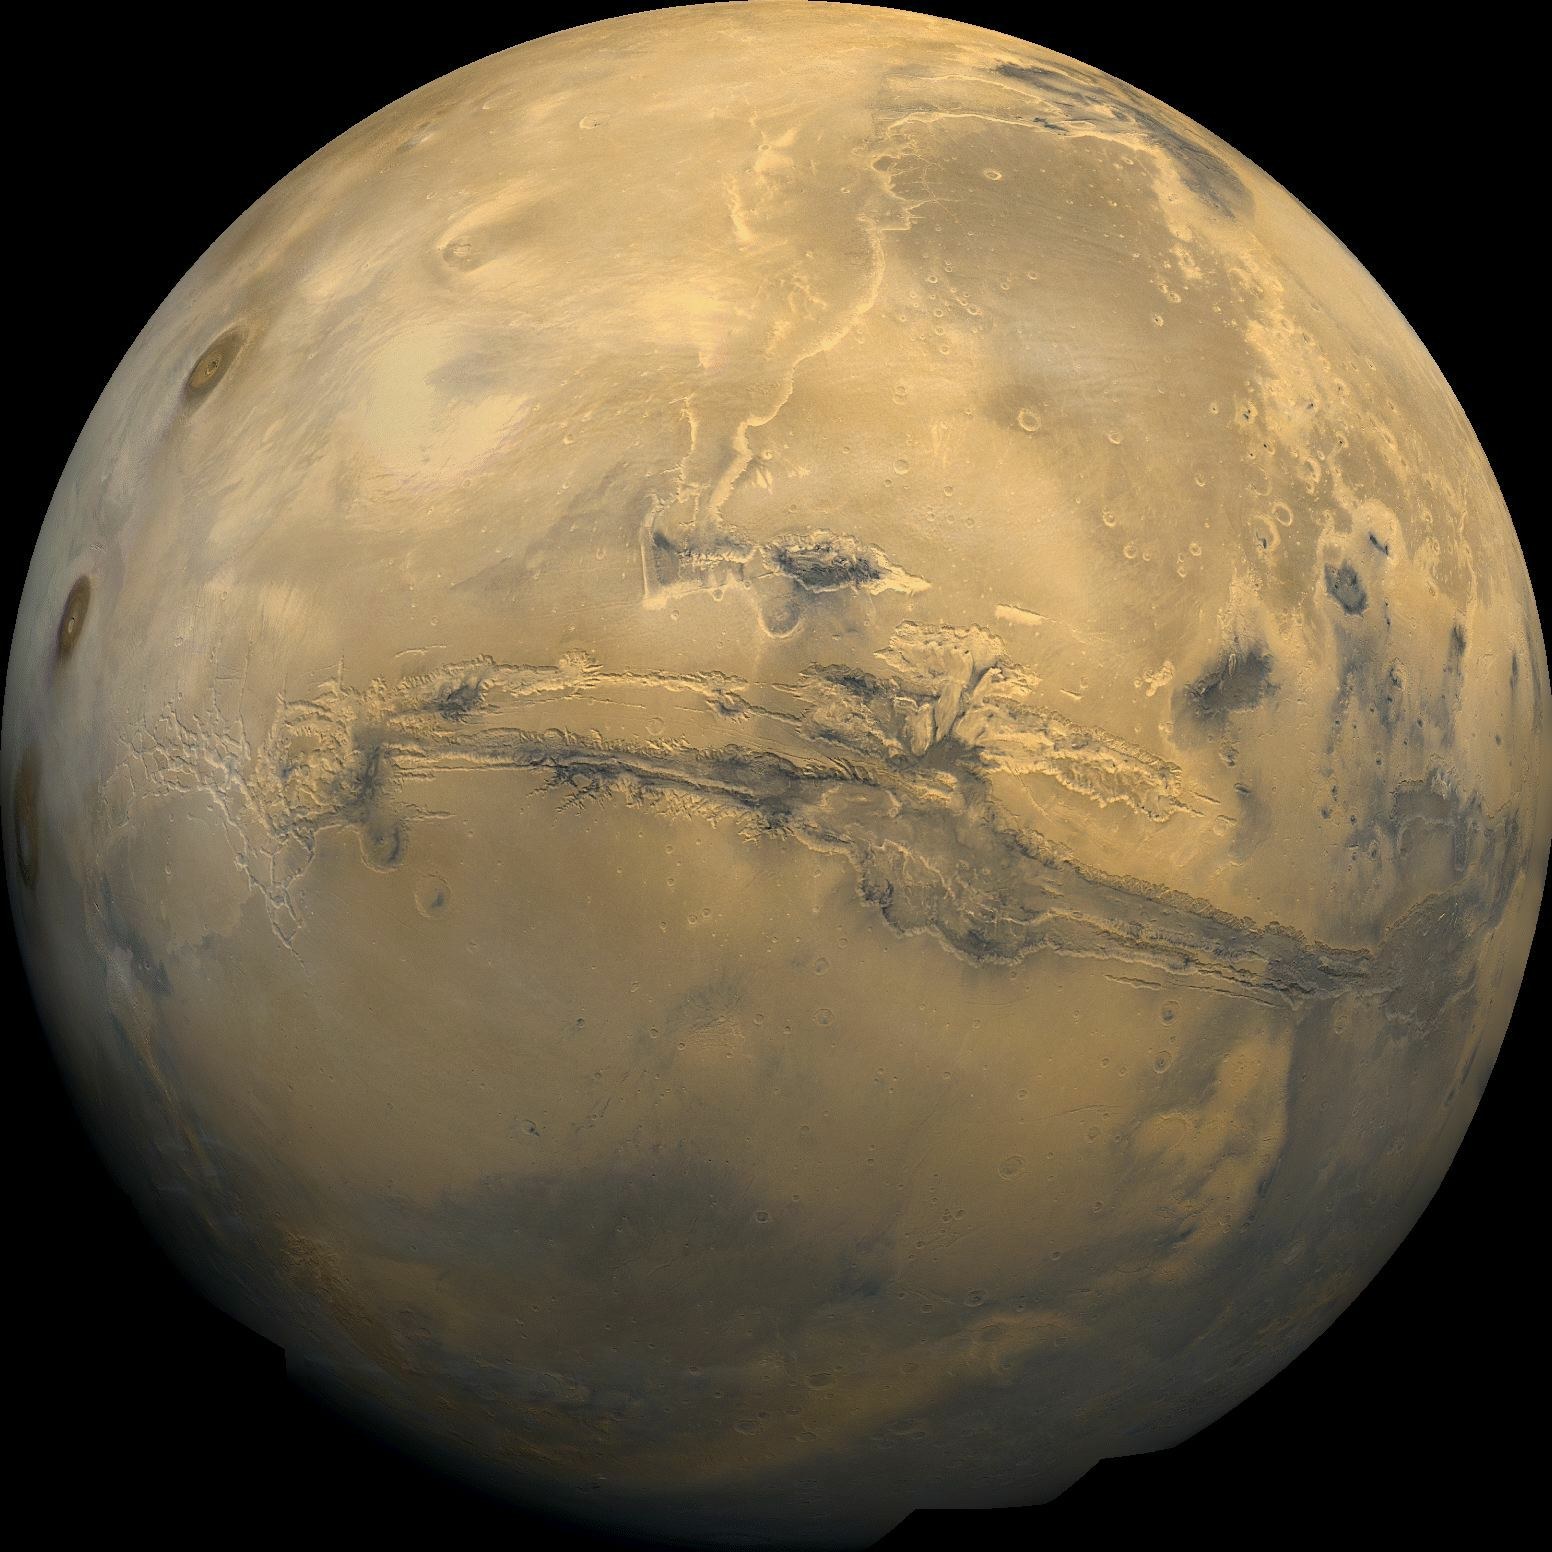 Electrical power is critical for exploring Mars